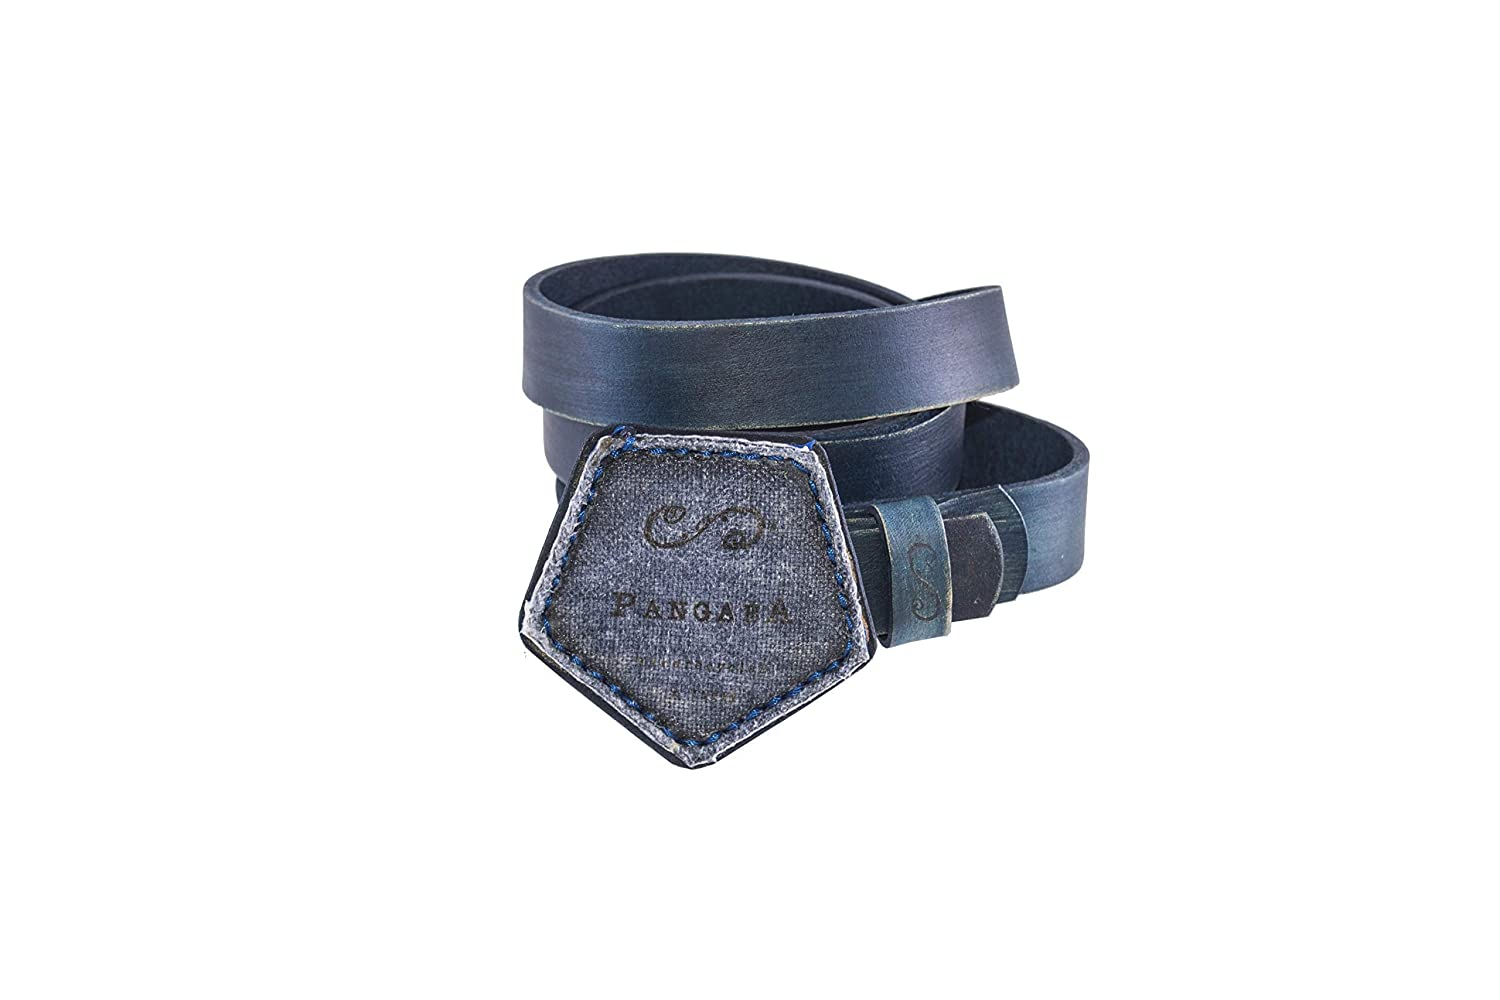 Soccer ball recycled bordeaux leather belt